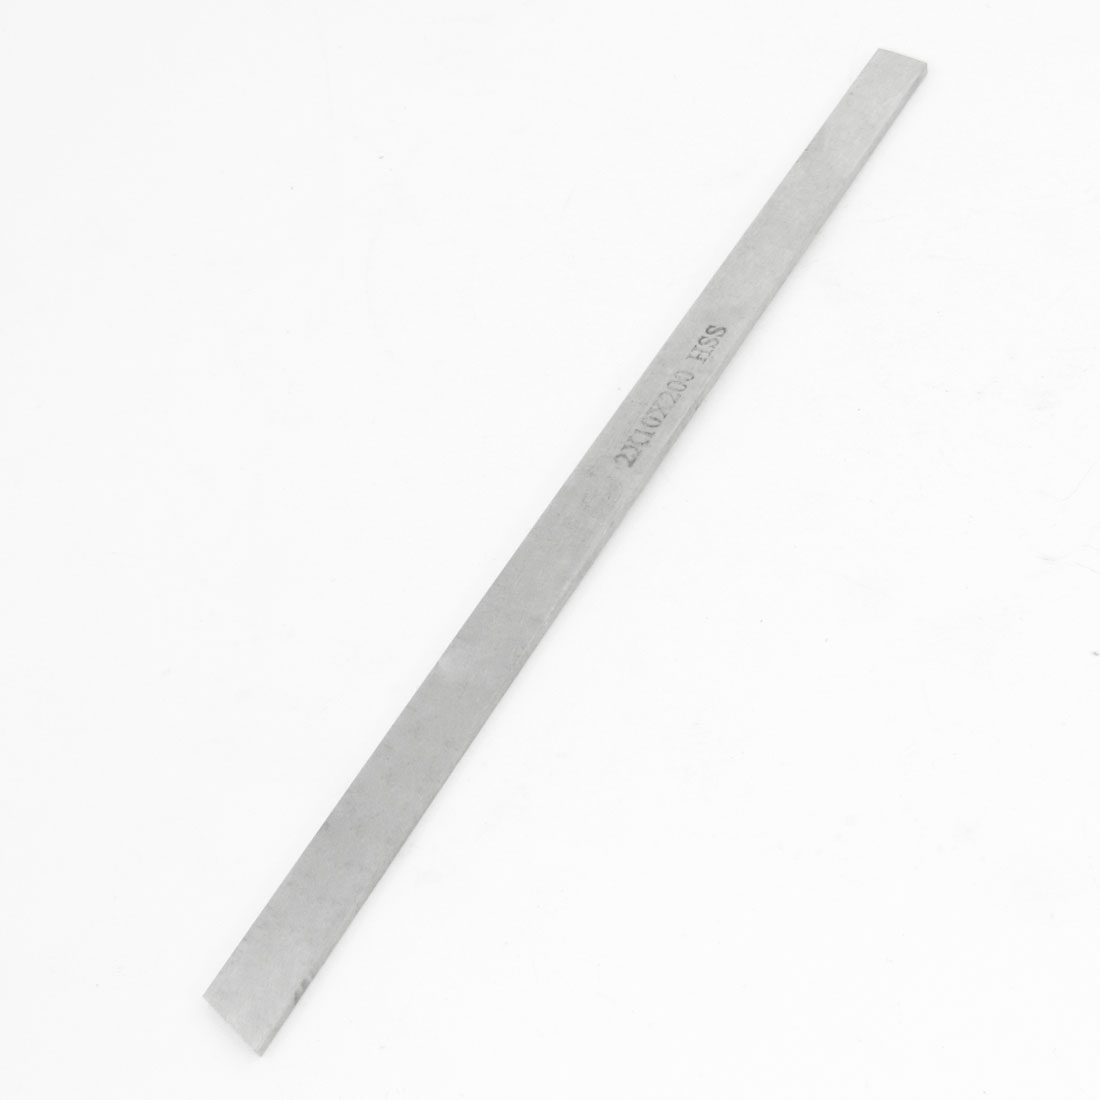 2mm x 10mm x 200mm Metalworker Milling Engraving Lathe HSS Tool Bit